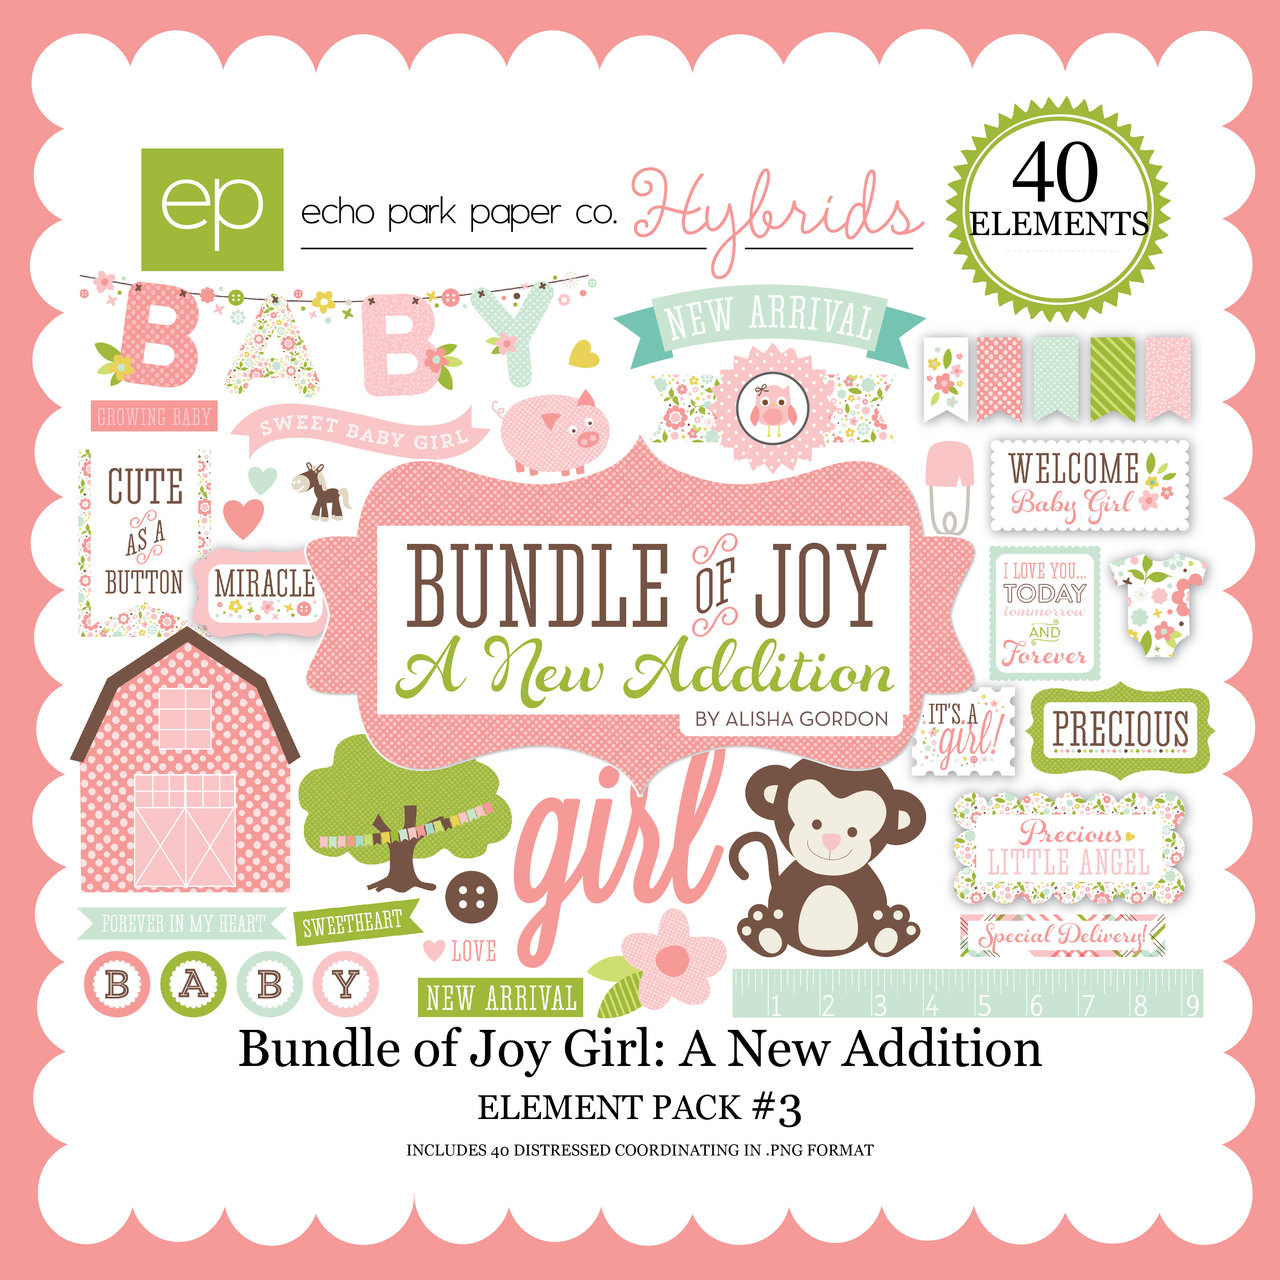 Bundle of Joy Girl: A New Addition Element Pack #3